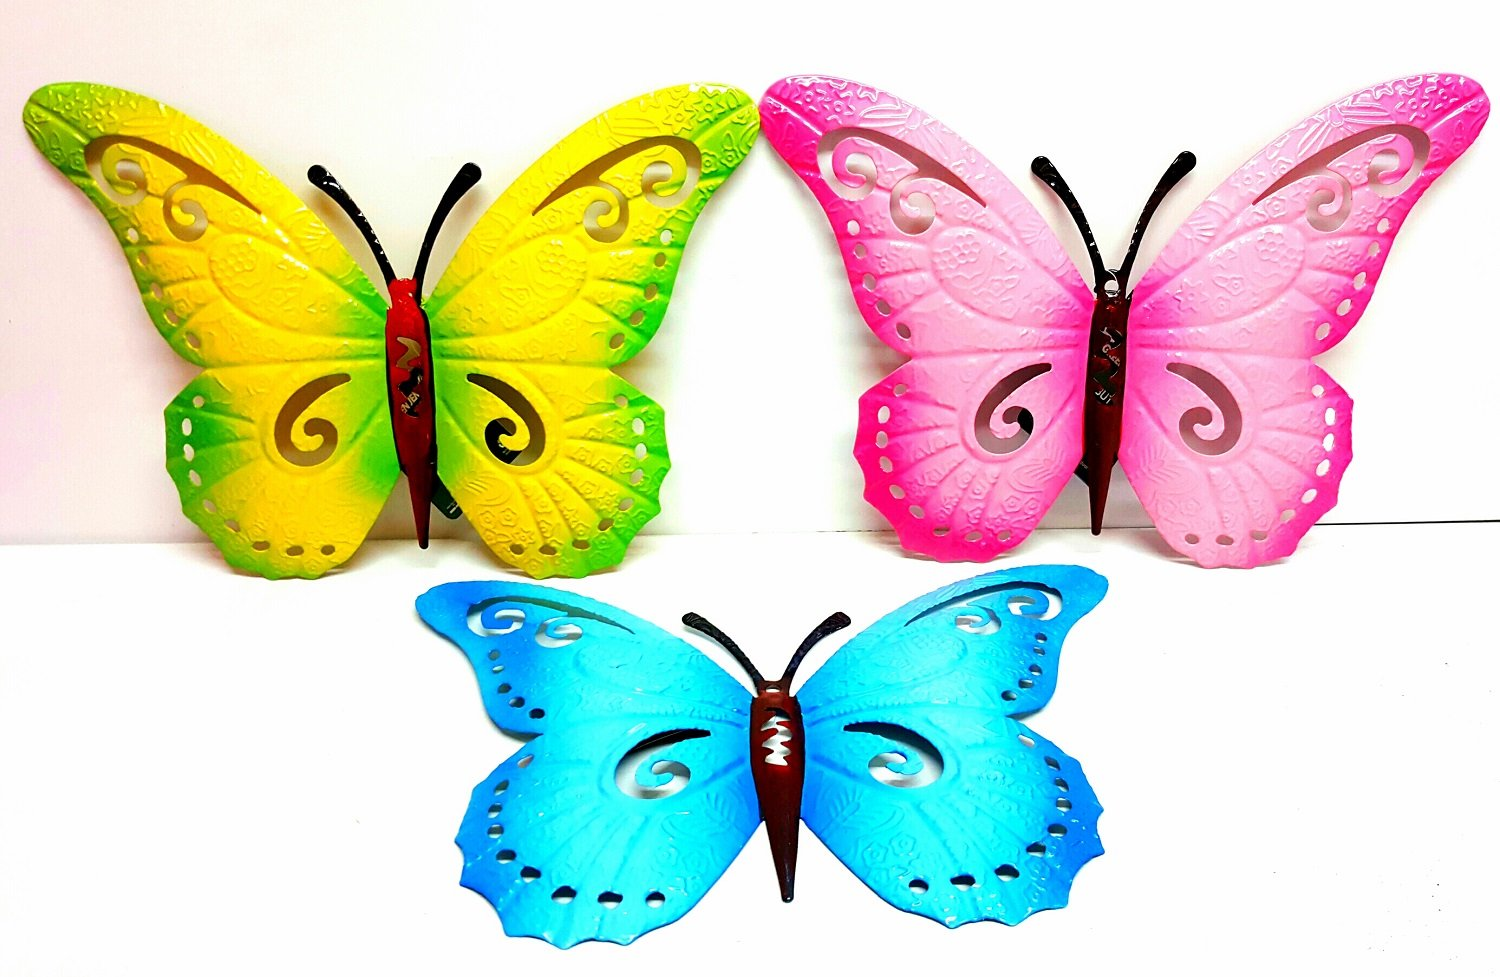 3x BUTTERFLIES LARGE PAINT COLOURED METAL BUTTERFLY WALL ART OUTDOOR GARDEN grenland